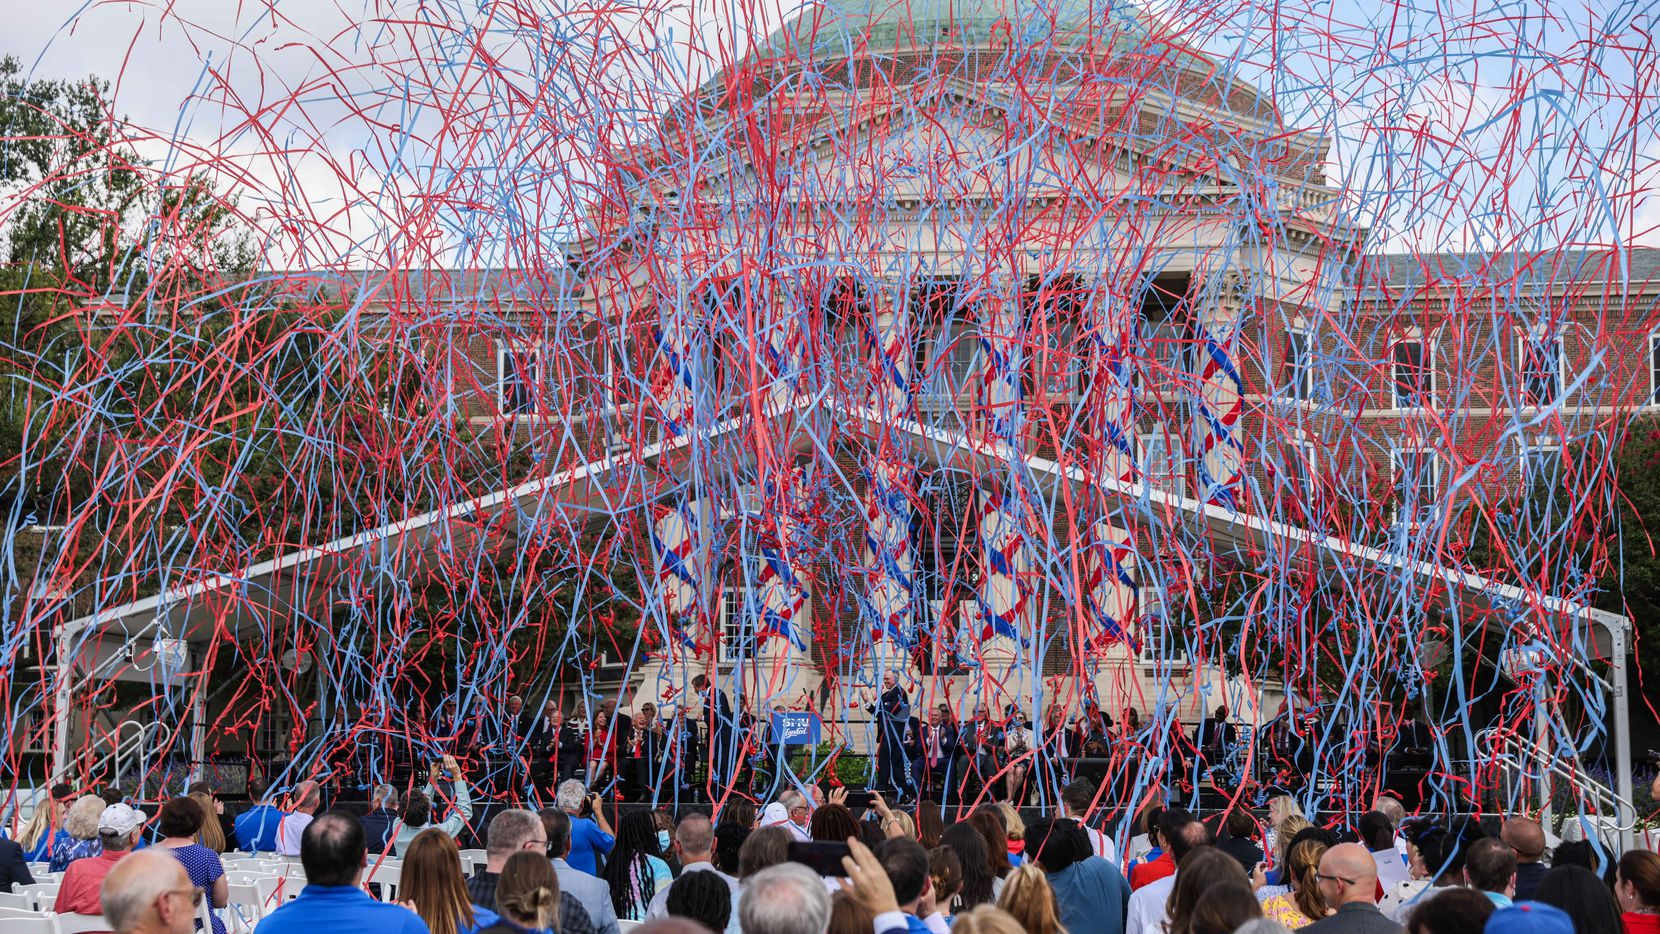 SMU President R. Gerald Turner kicked off a $1.5 billion multiyear fundraising campaign that will deliver major benefits to the city and the North Texas region.